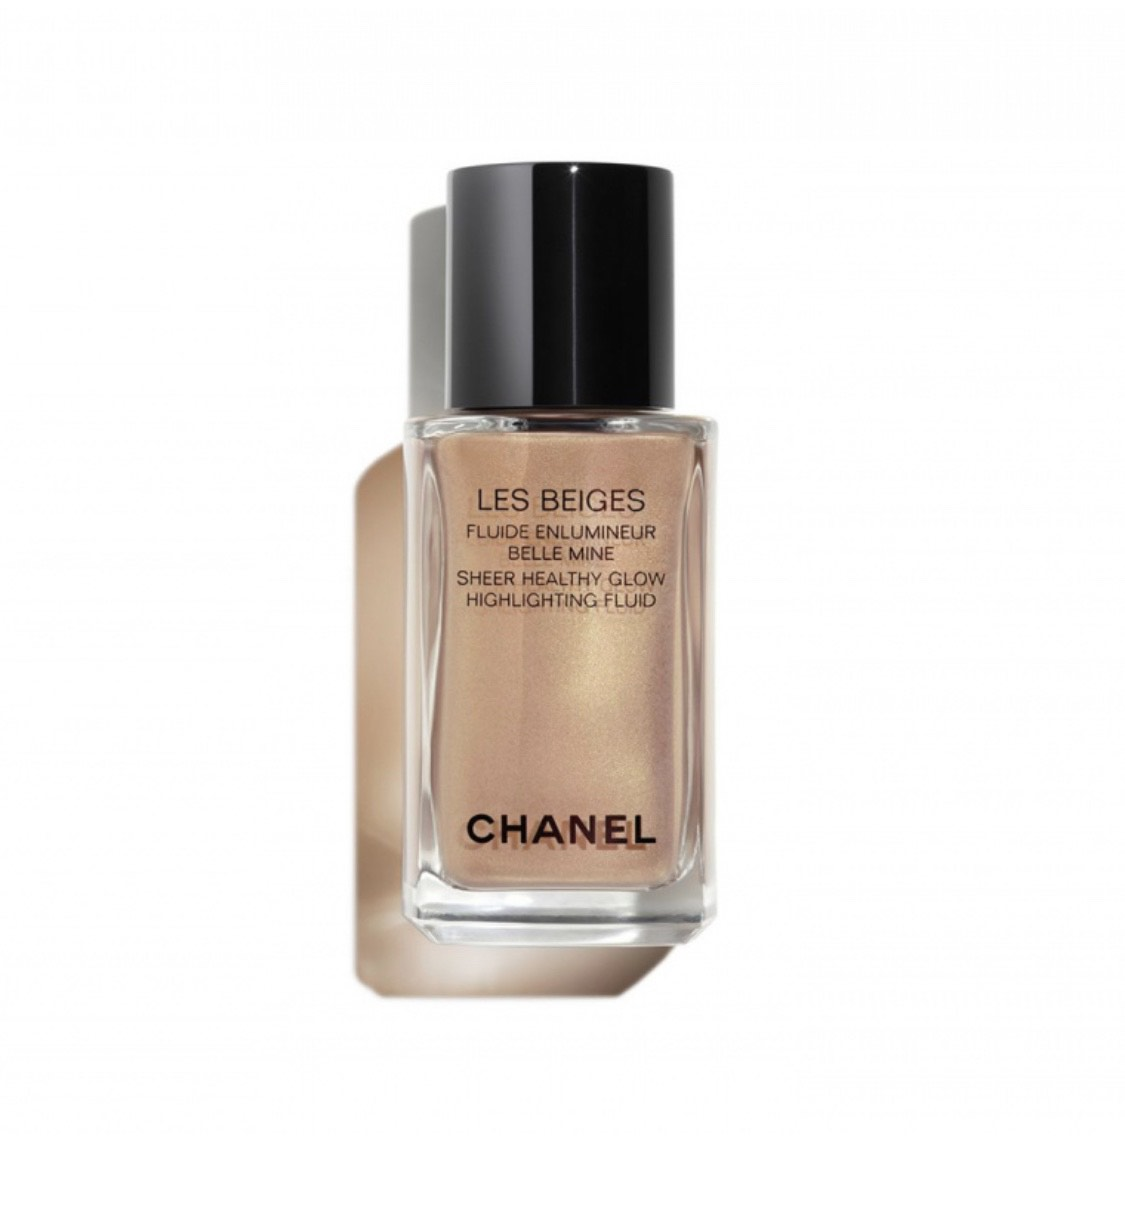 Флюид-хайлайтер Chanel Les Beiges, 2 708 р. (Золотое яблоко)